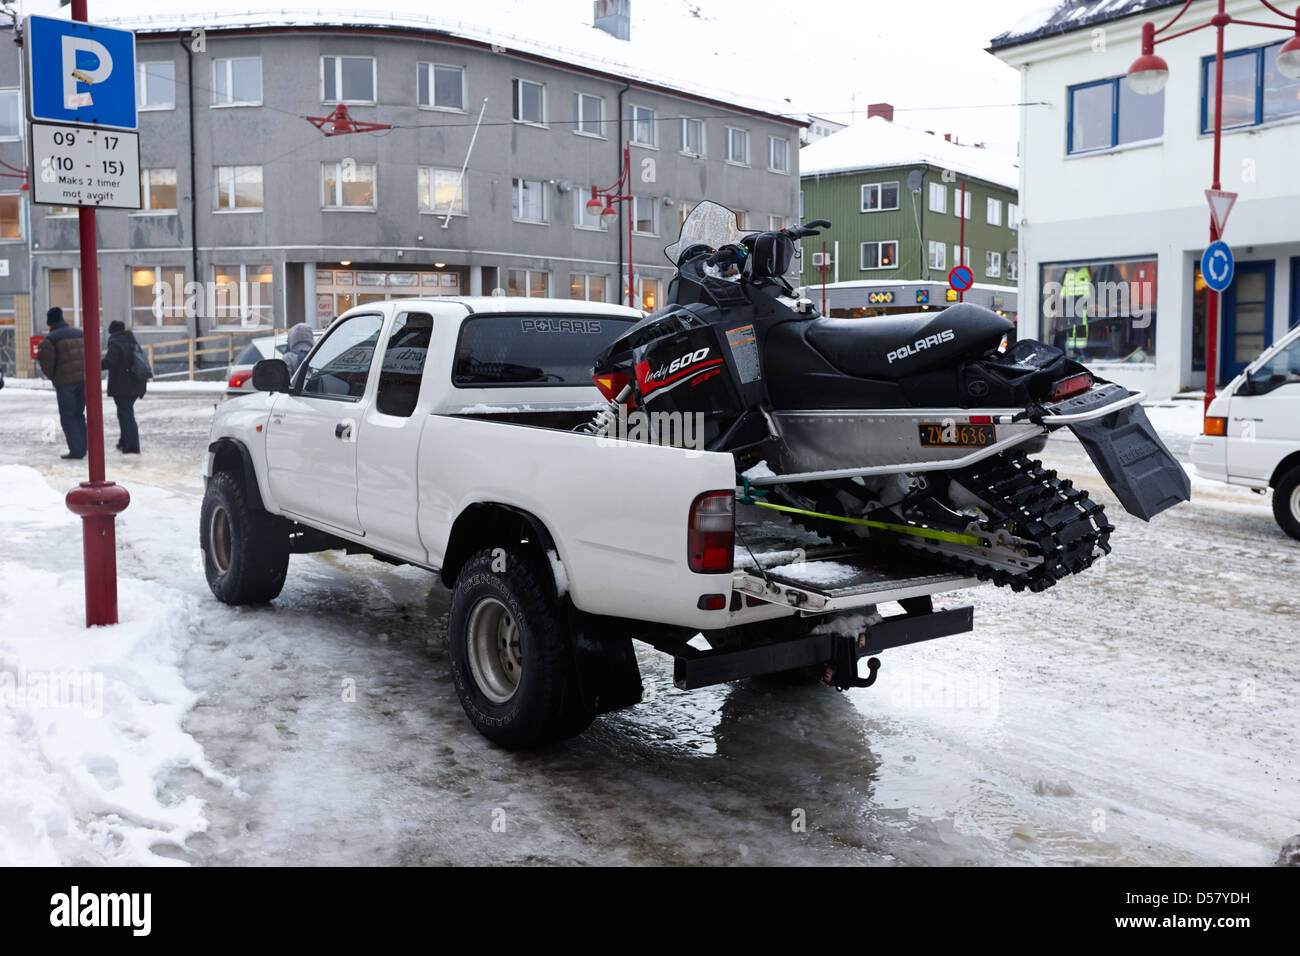 pickup truck carrying snowmobile Honningsvag finnmark norway europe - Stock Image